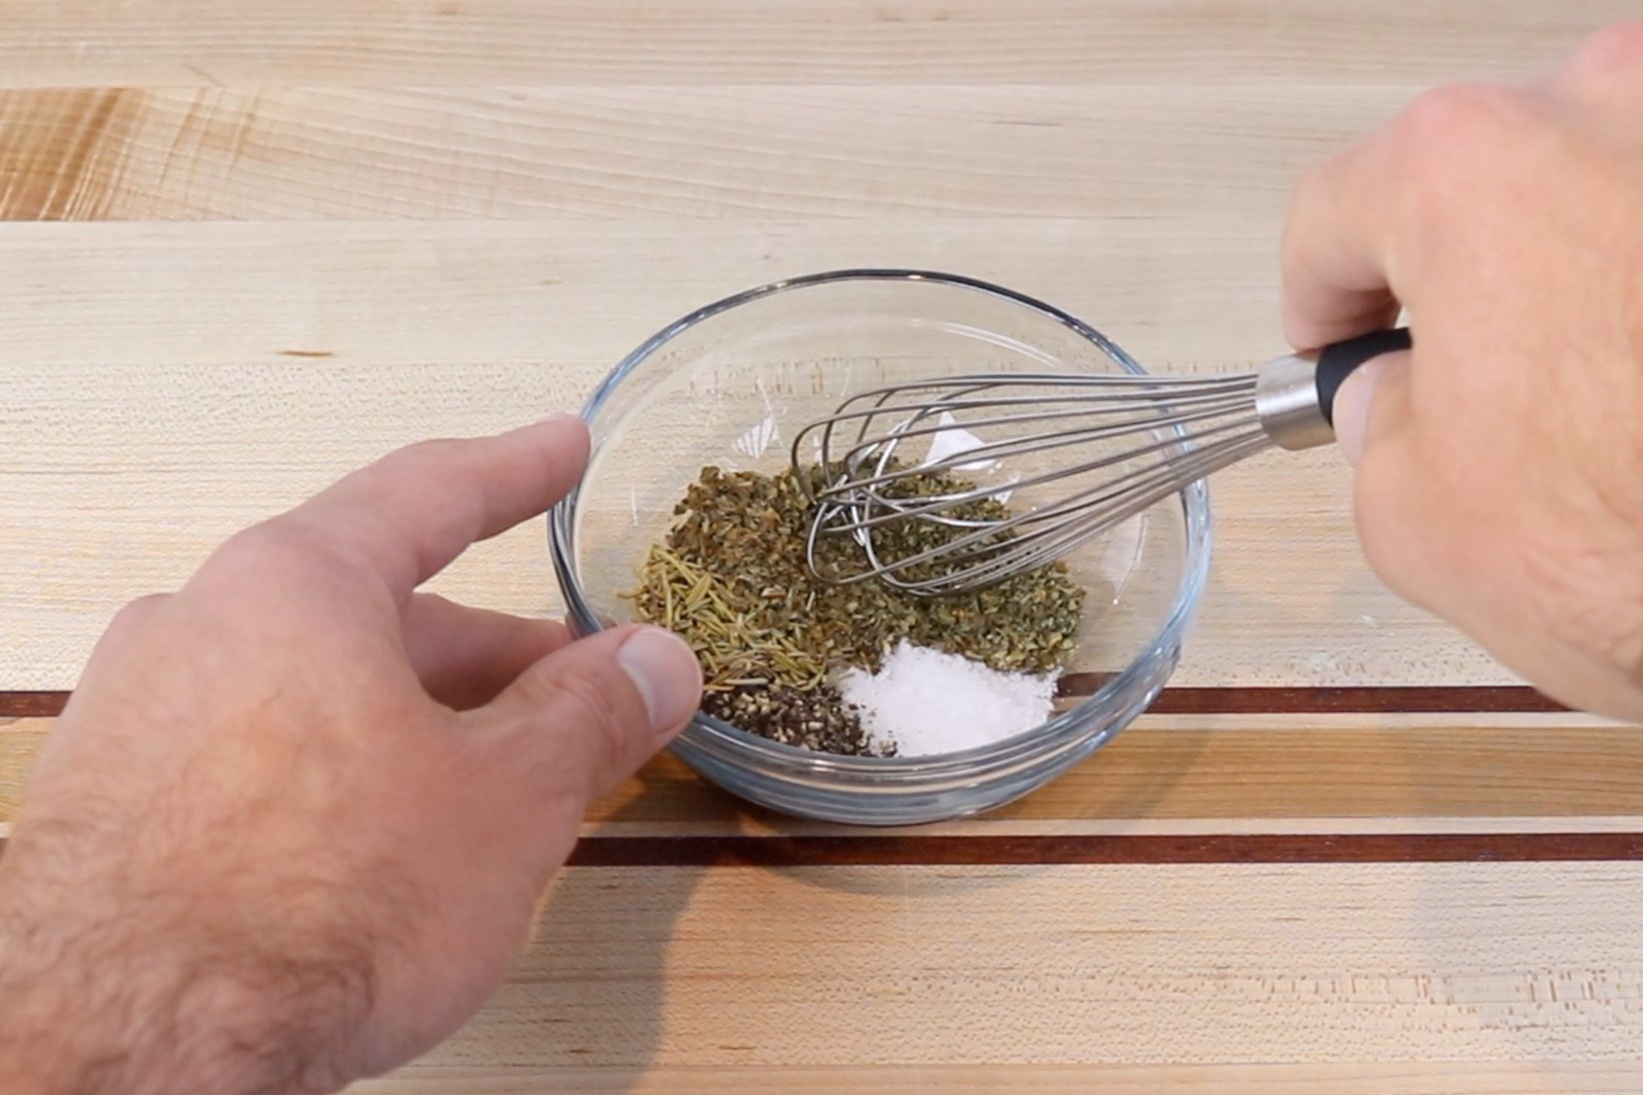 1. In a small bowl mix together salt, pepper, oregano, and rosemary to make the seasoning. -